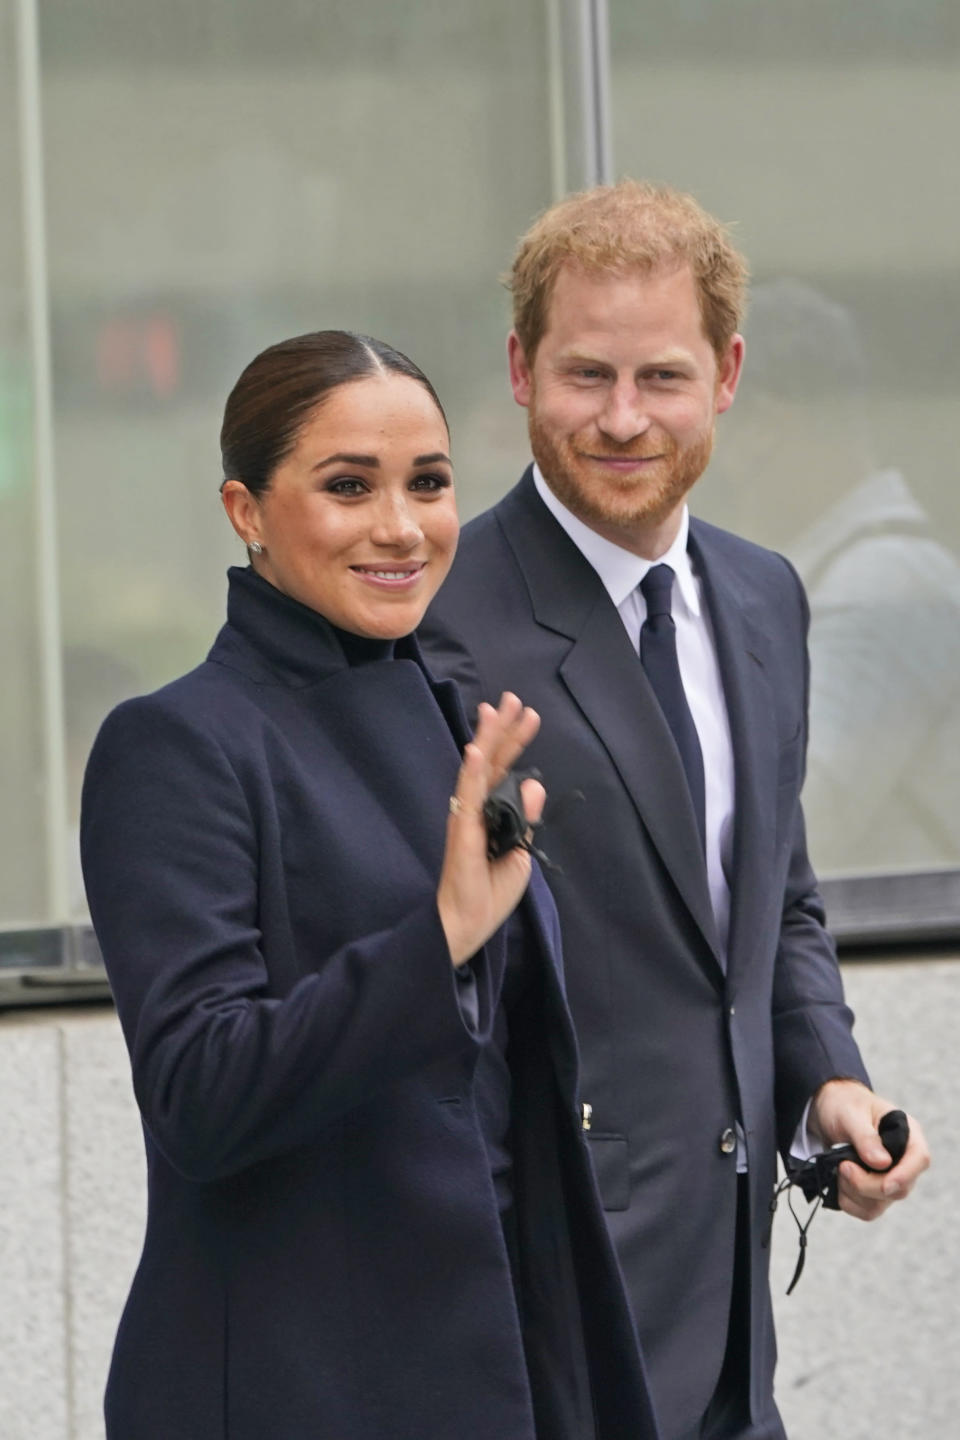 Meghan Markle and Prince Harry pose for pictures after visiting the observatory in One World Trade in New York, Thursday, Sept. 23, 2021. The Duke and Duchess of Sussex got a hawk's-eye view of New York City with a visit to the rebuilt World Trade Center's signature tower. (AP Photo/Seth Wenig)